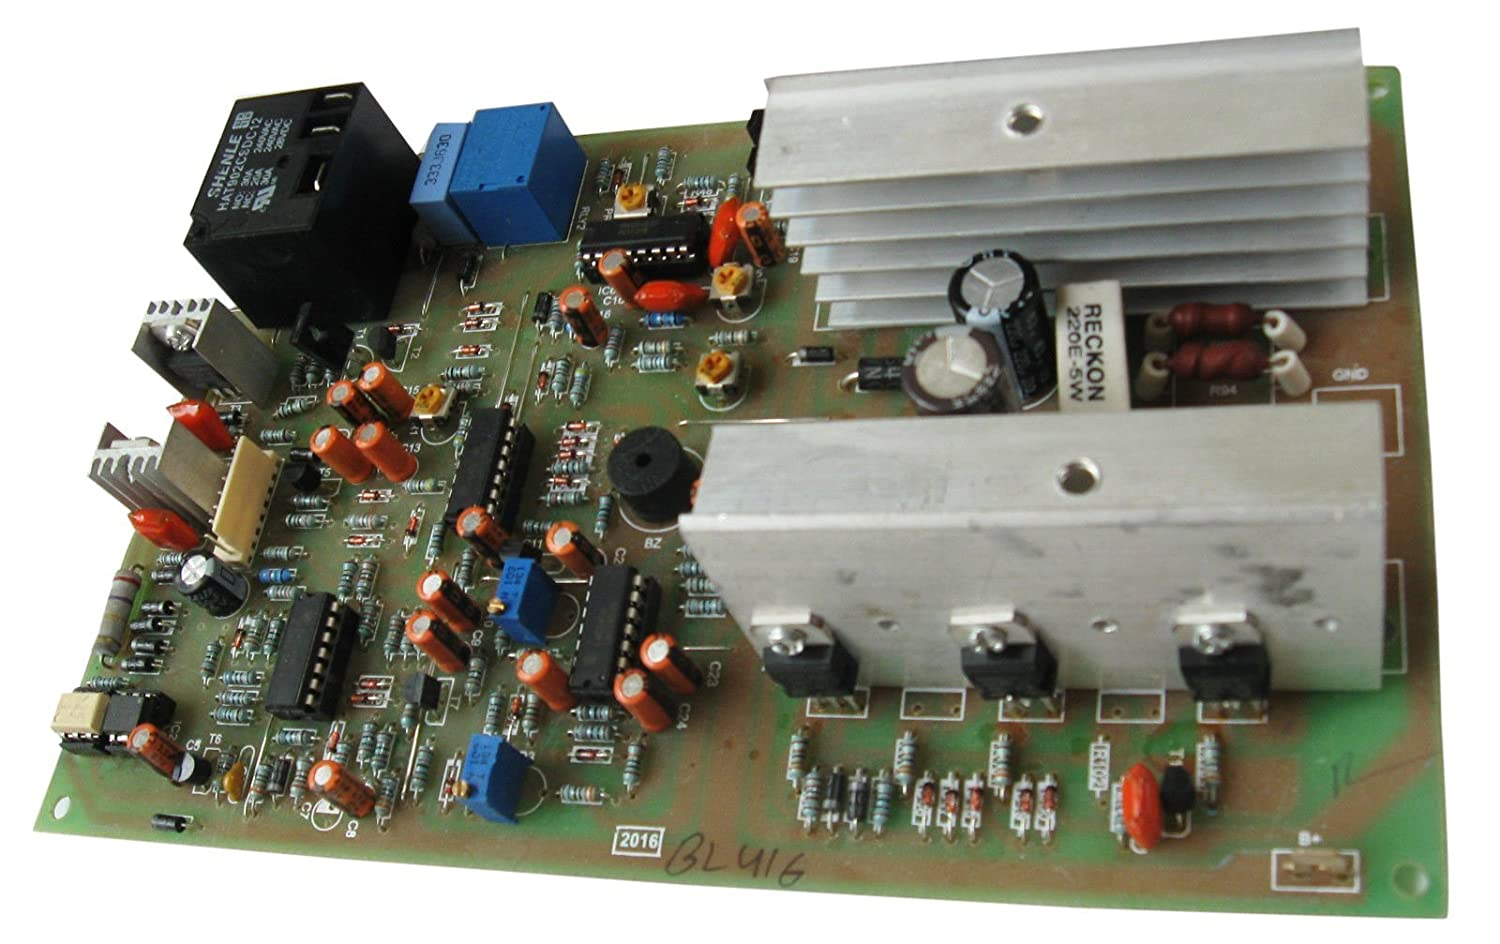 Buy Rashri 500 Watt Inverter Card Board Pcb Circuit With Electronic Components Inside A Computer Stock Photo Motherboard Online At Low Prices In India Reviews Ratings